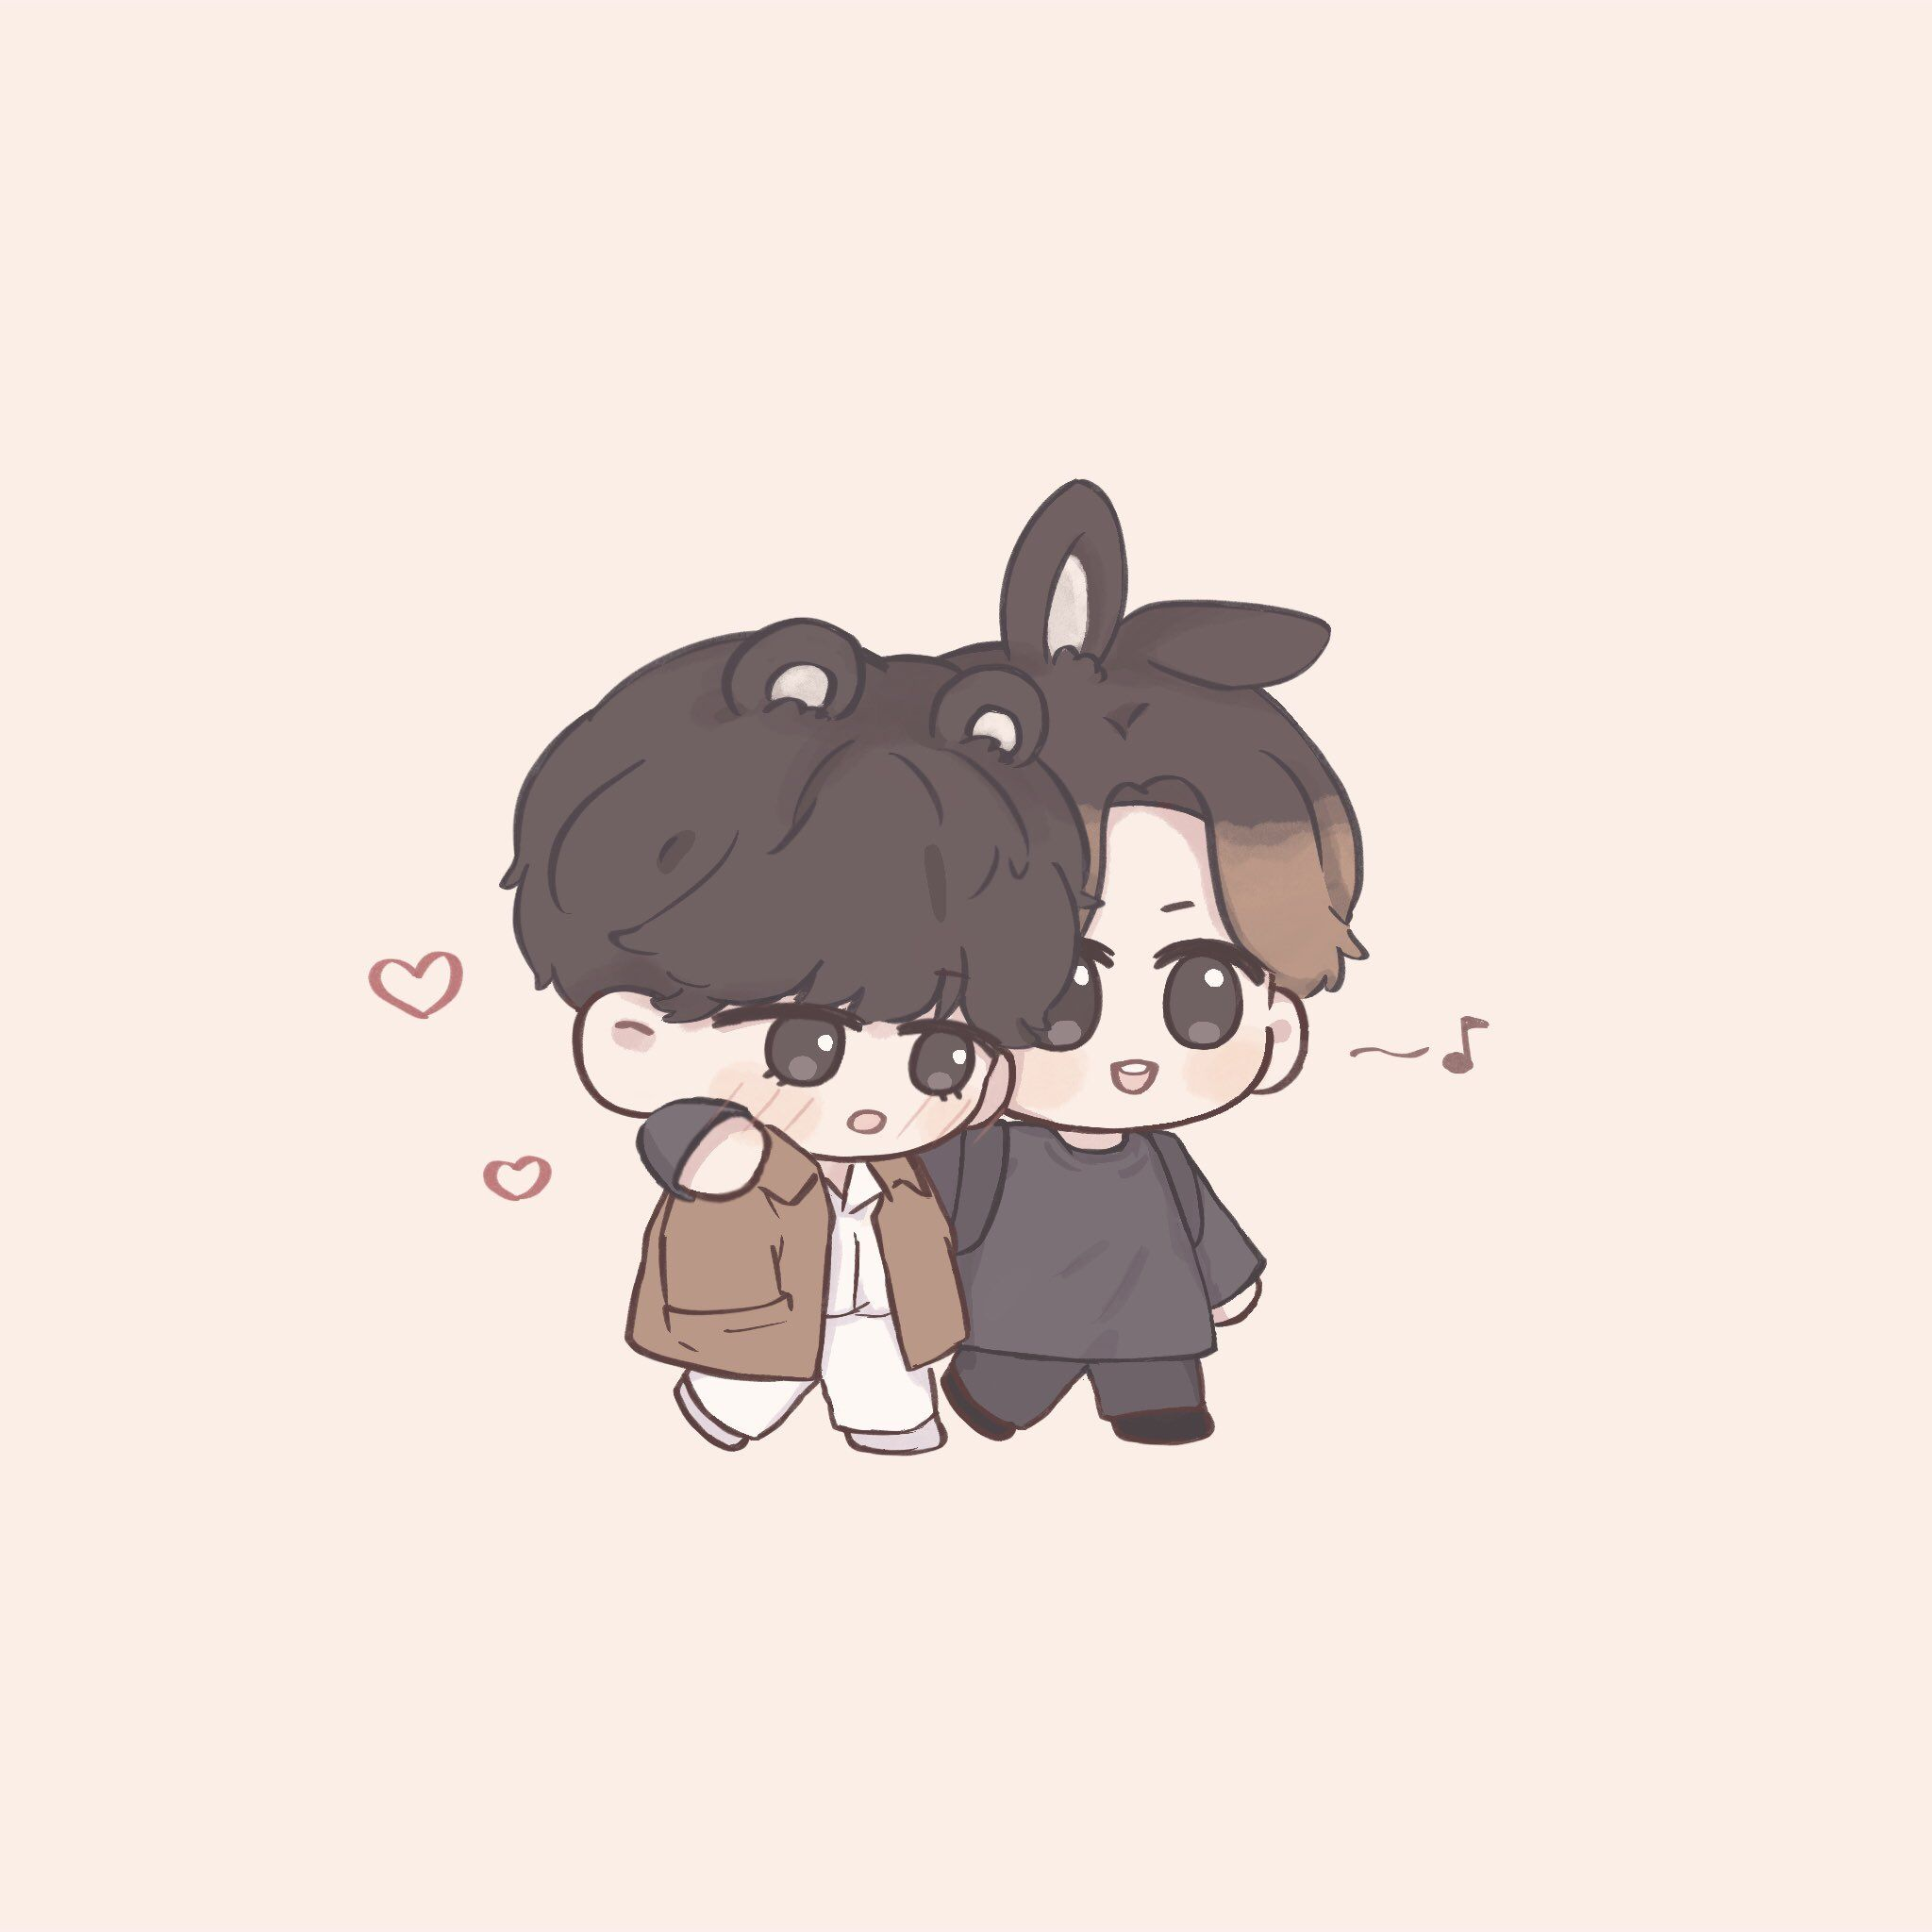 Wanz ʕ ʔ On Twitter Cute Cartoon Wallpapers Bts Chibi Vkook Fanart